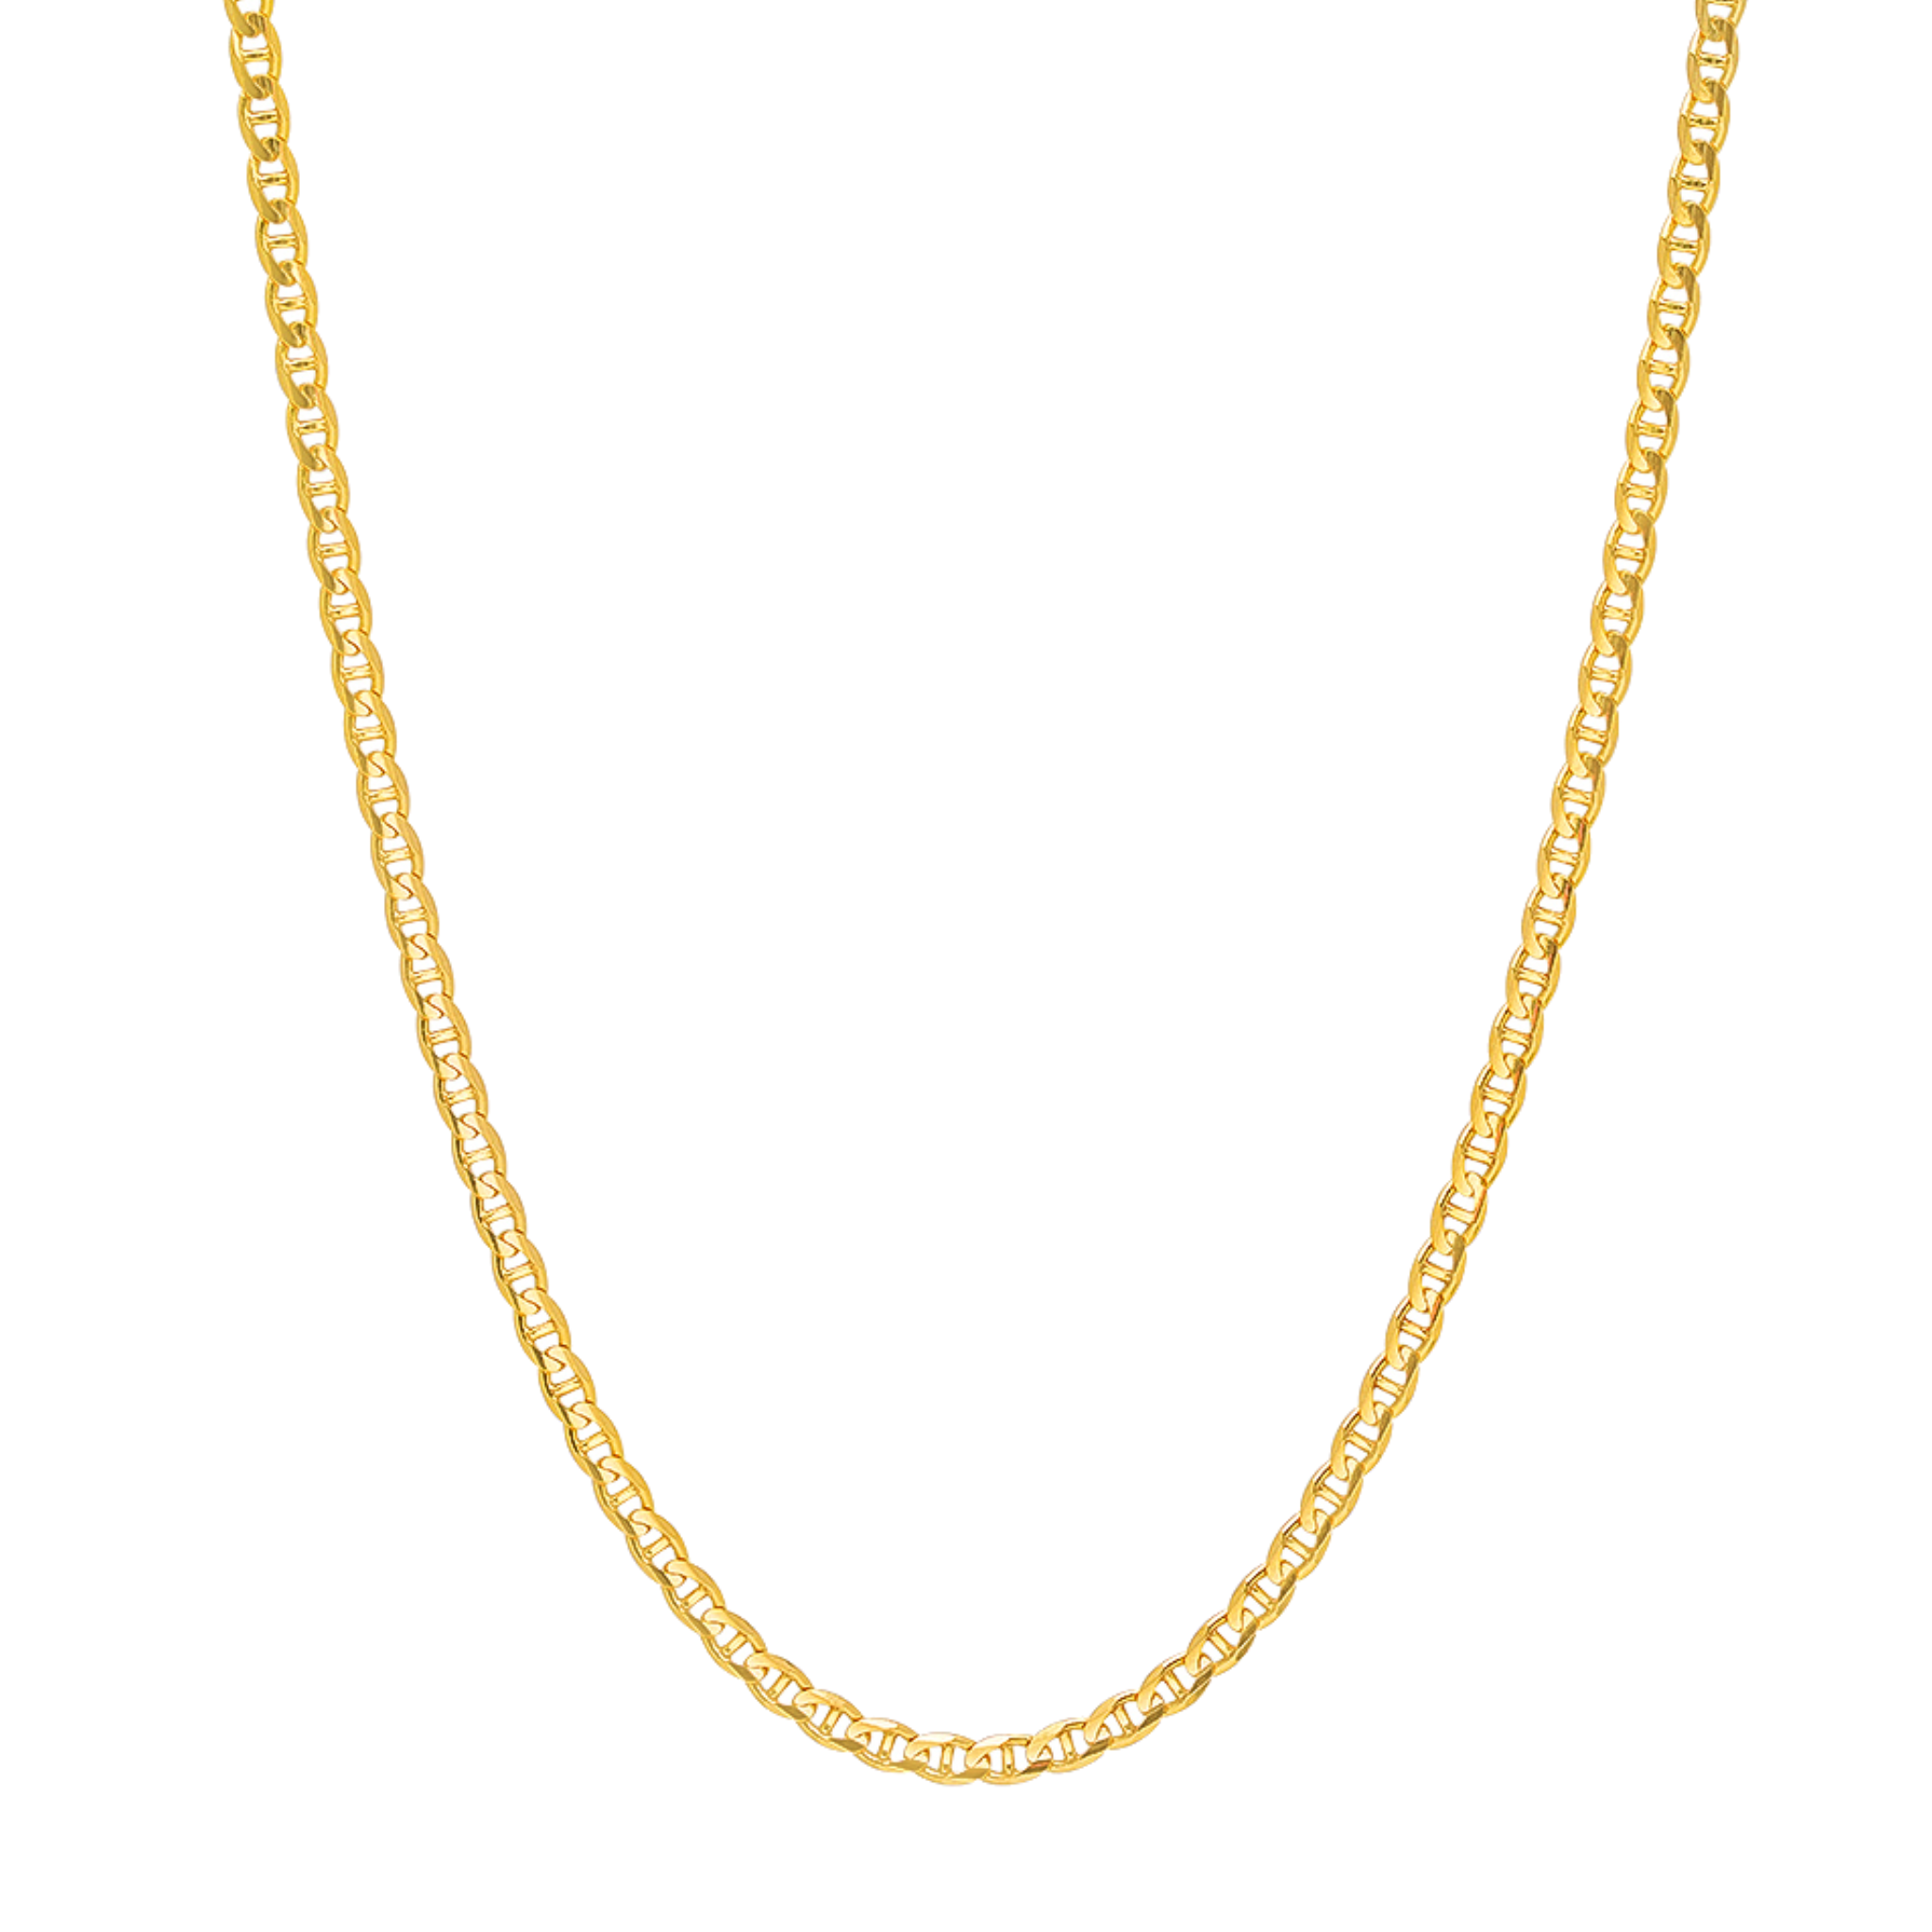 Mariner Chain 14k Gold